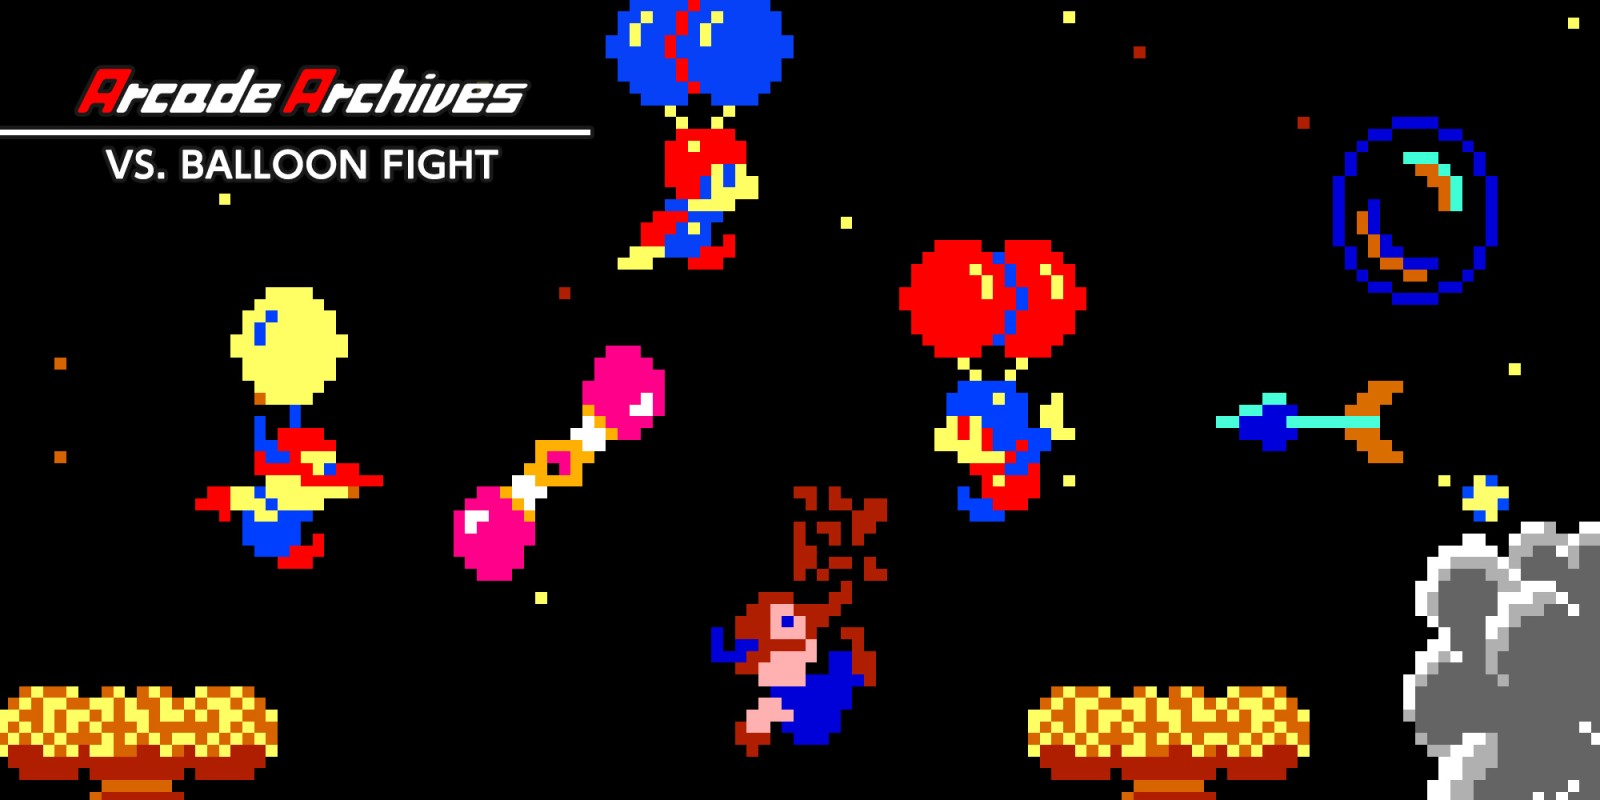 Arcade Archives VS. BALLOON FIGHT